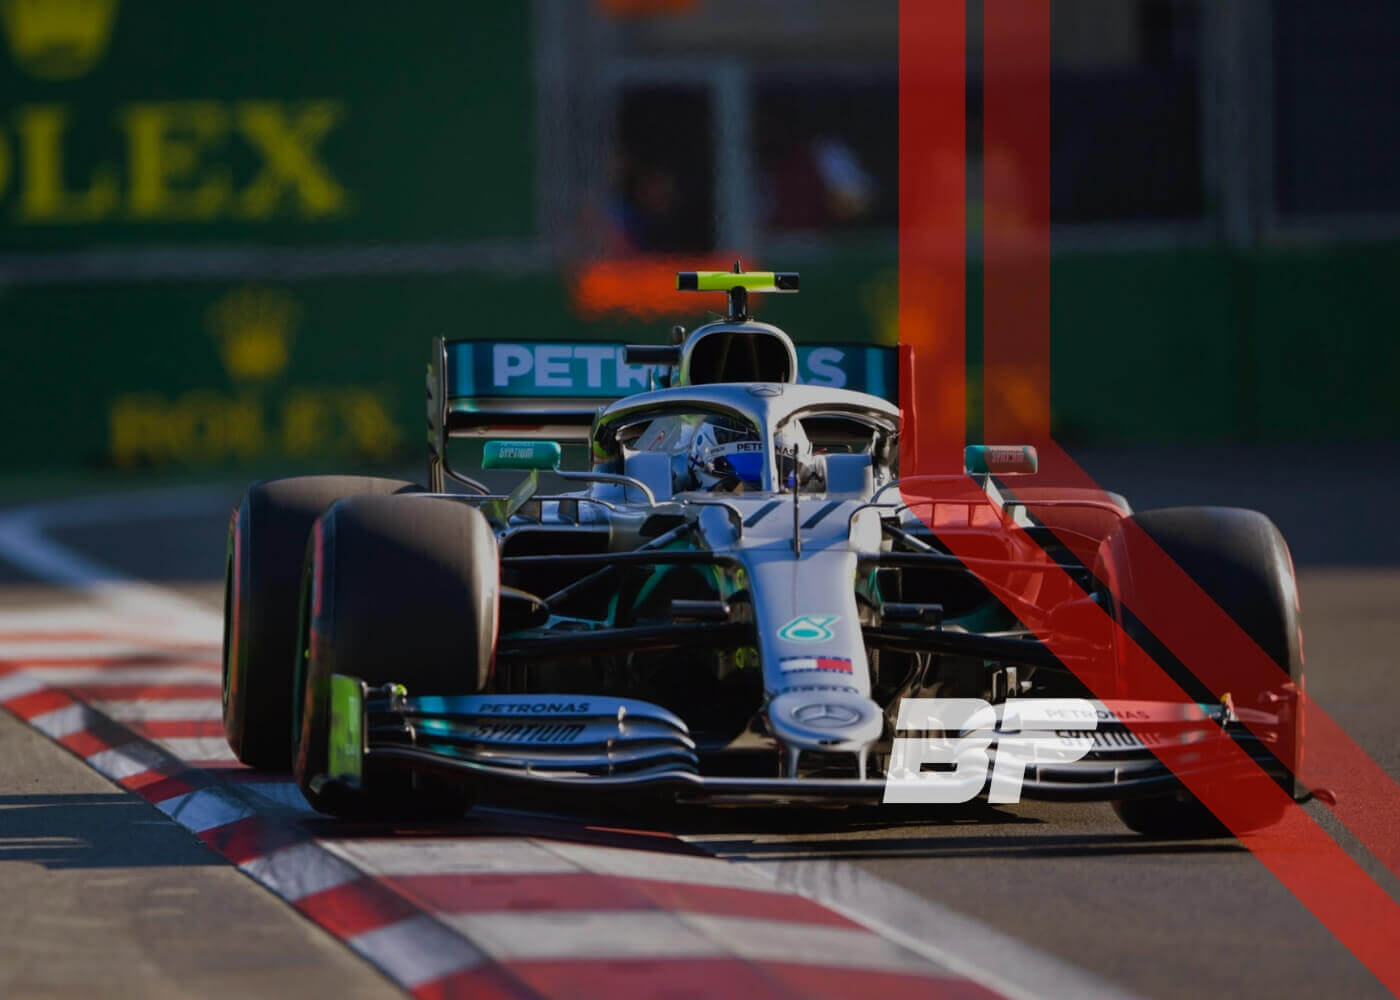 Photo of Classificação Baku – Com final movimentado, Bottas fatura Pole pela Mercedes e Leclerc como favorito bate